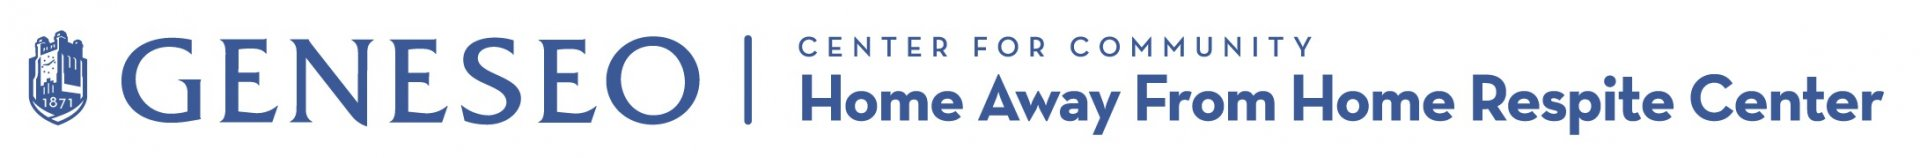 Geneseo Home Away From Home Respite Center Logo